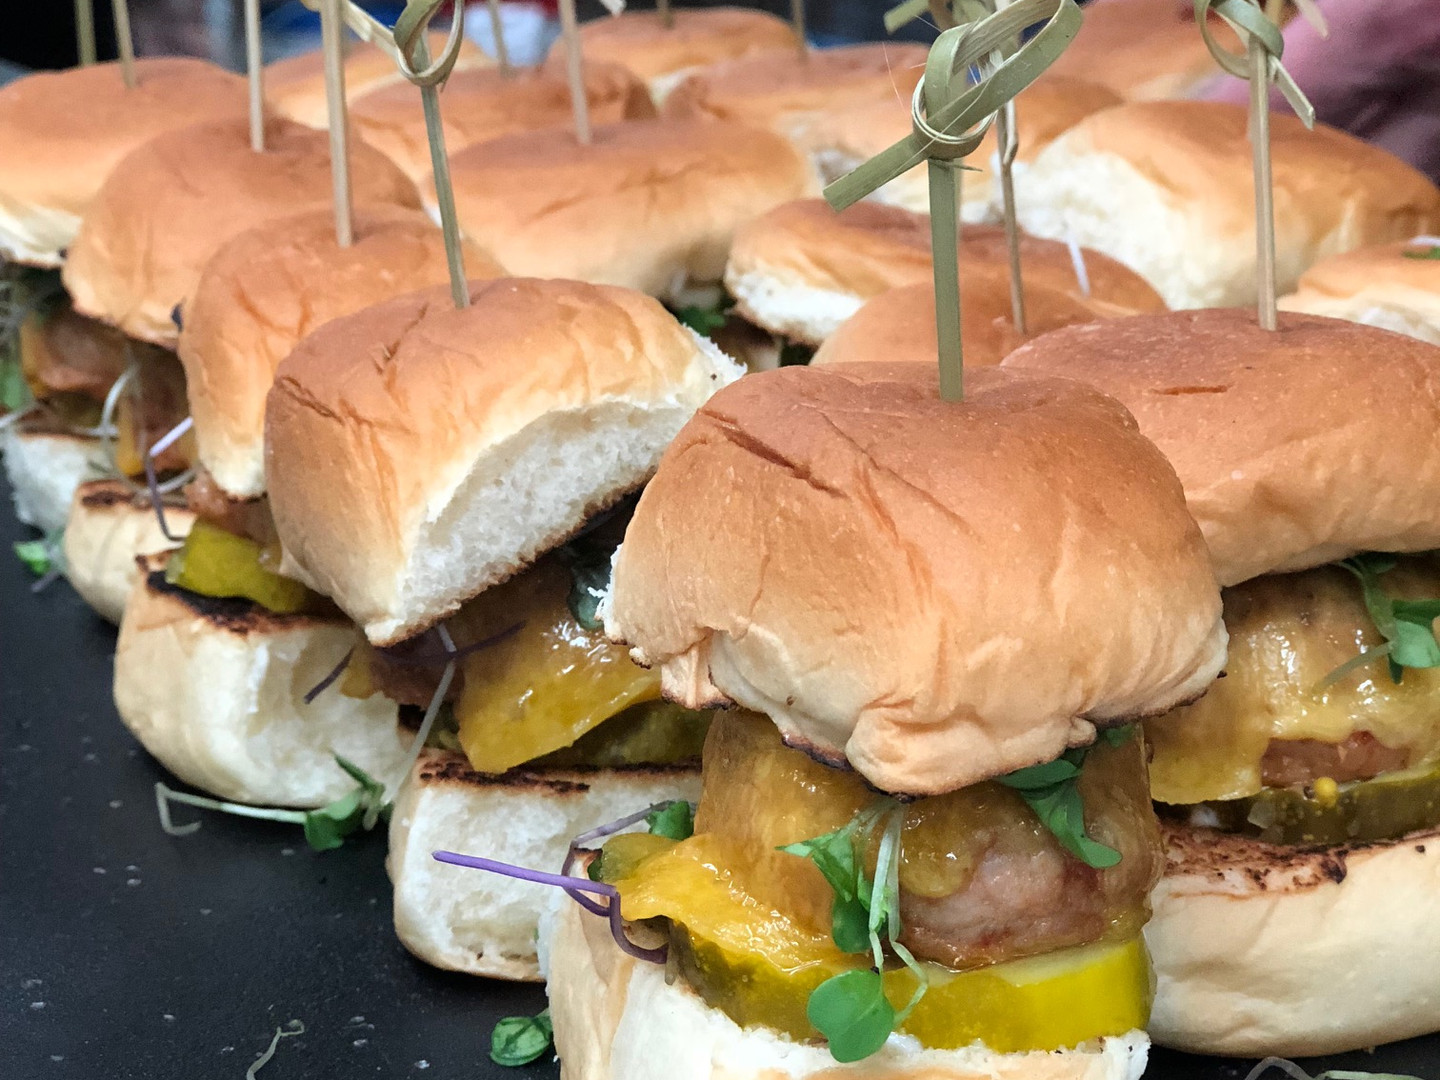 Our Spicy Chicken Sliders - always a favorite!